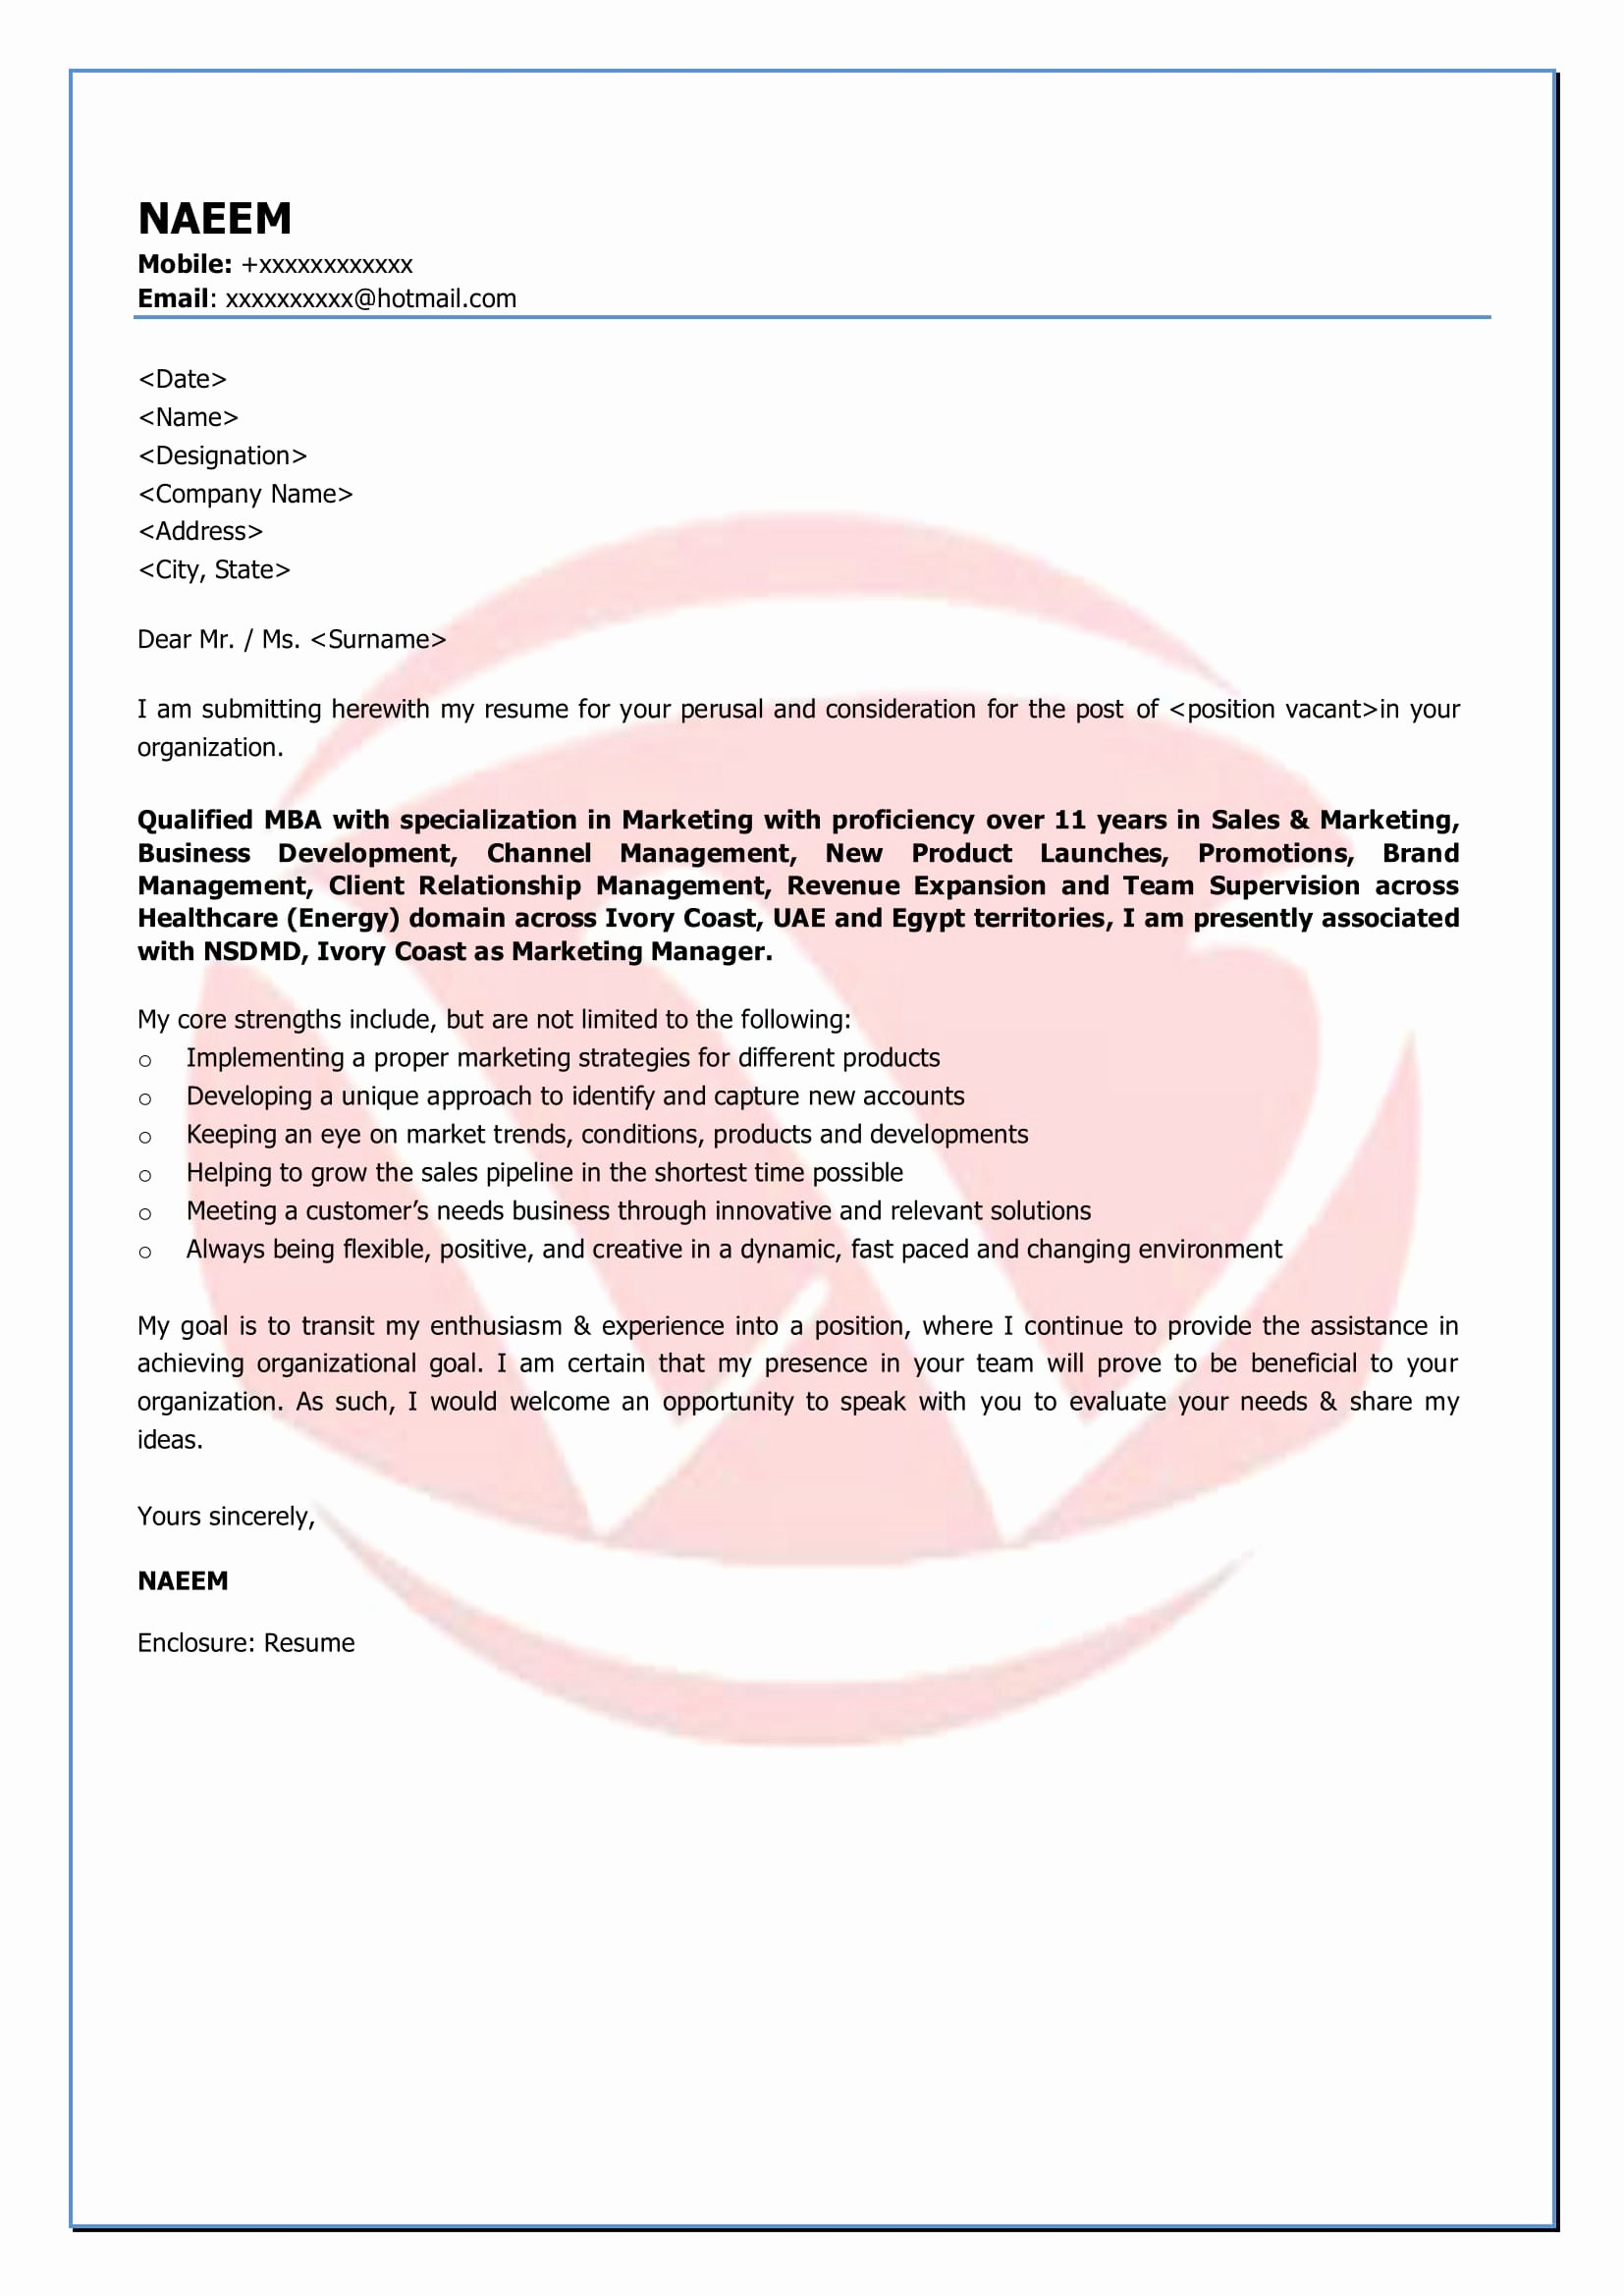 Marketing Cover Letter Template Unique Marketing Sample Cover Letter format Download Cover